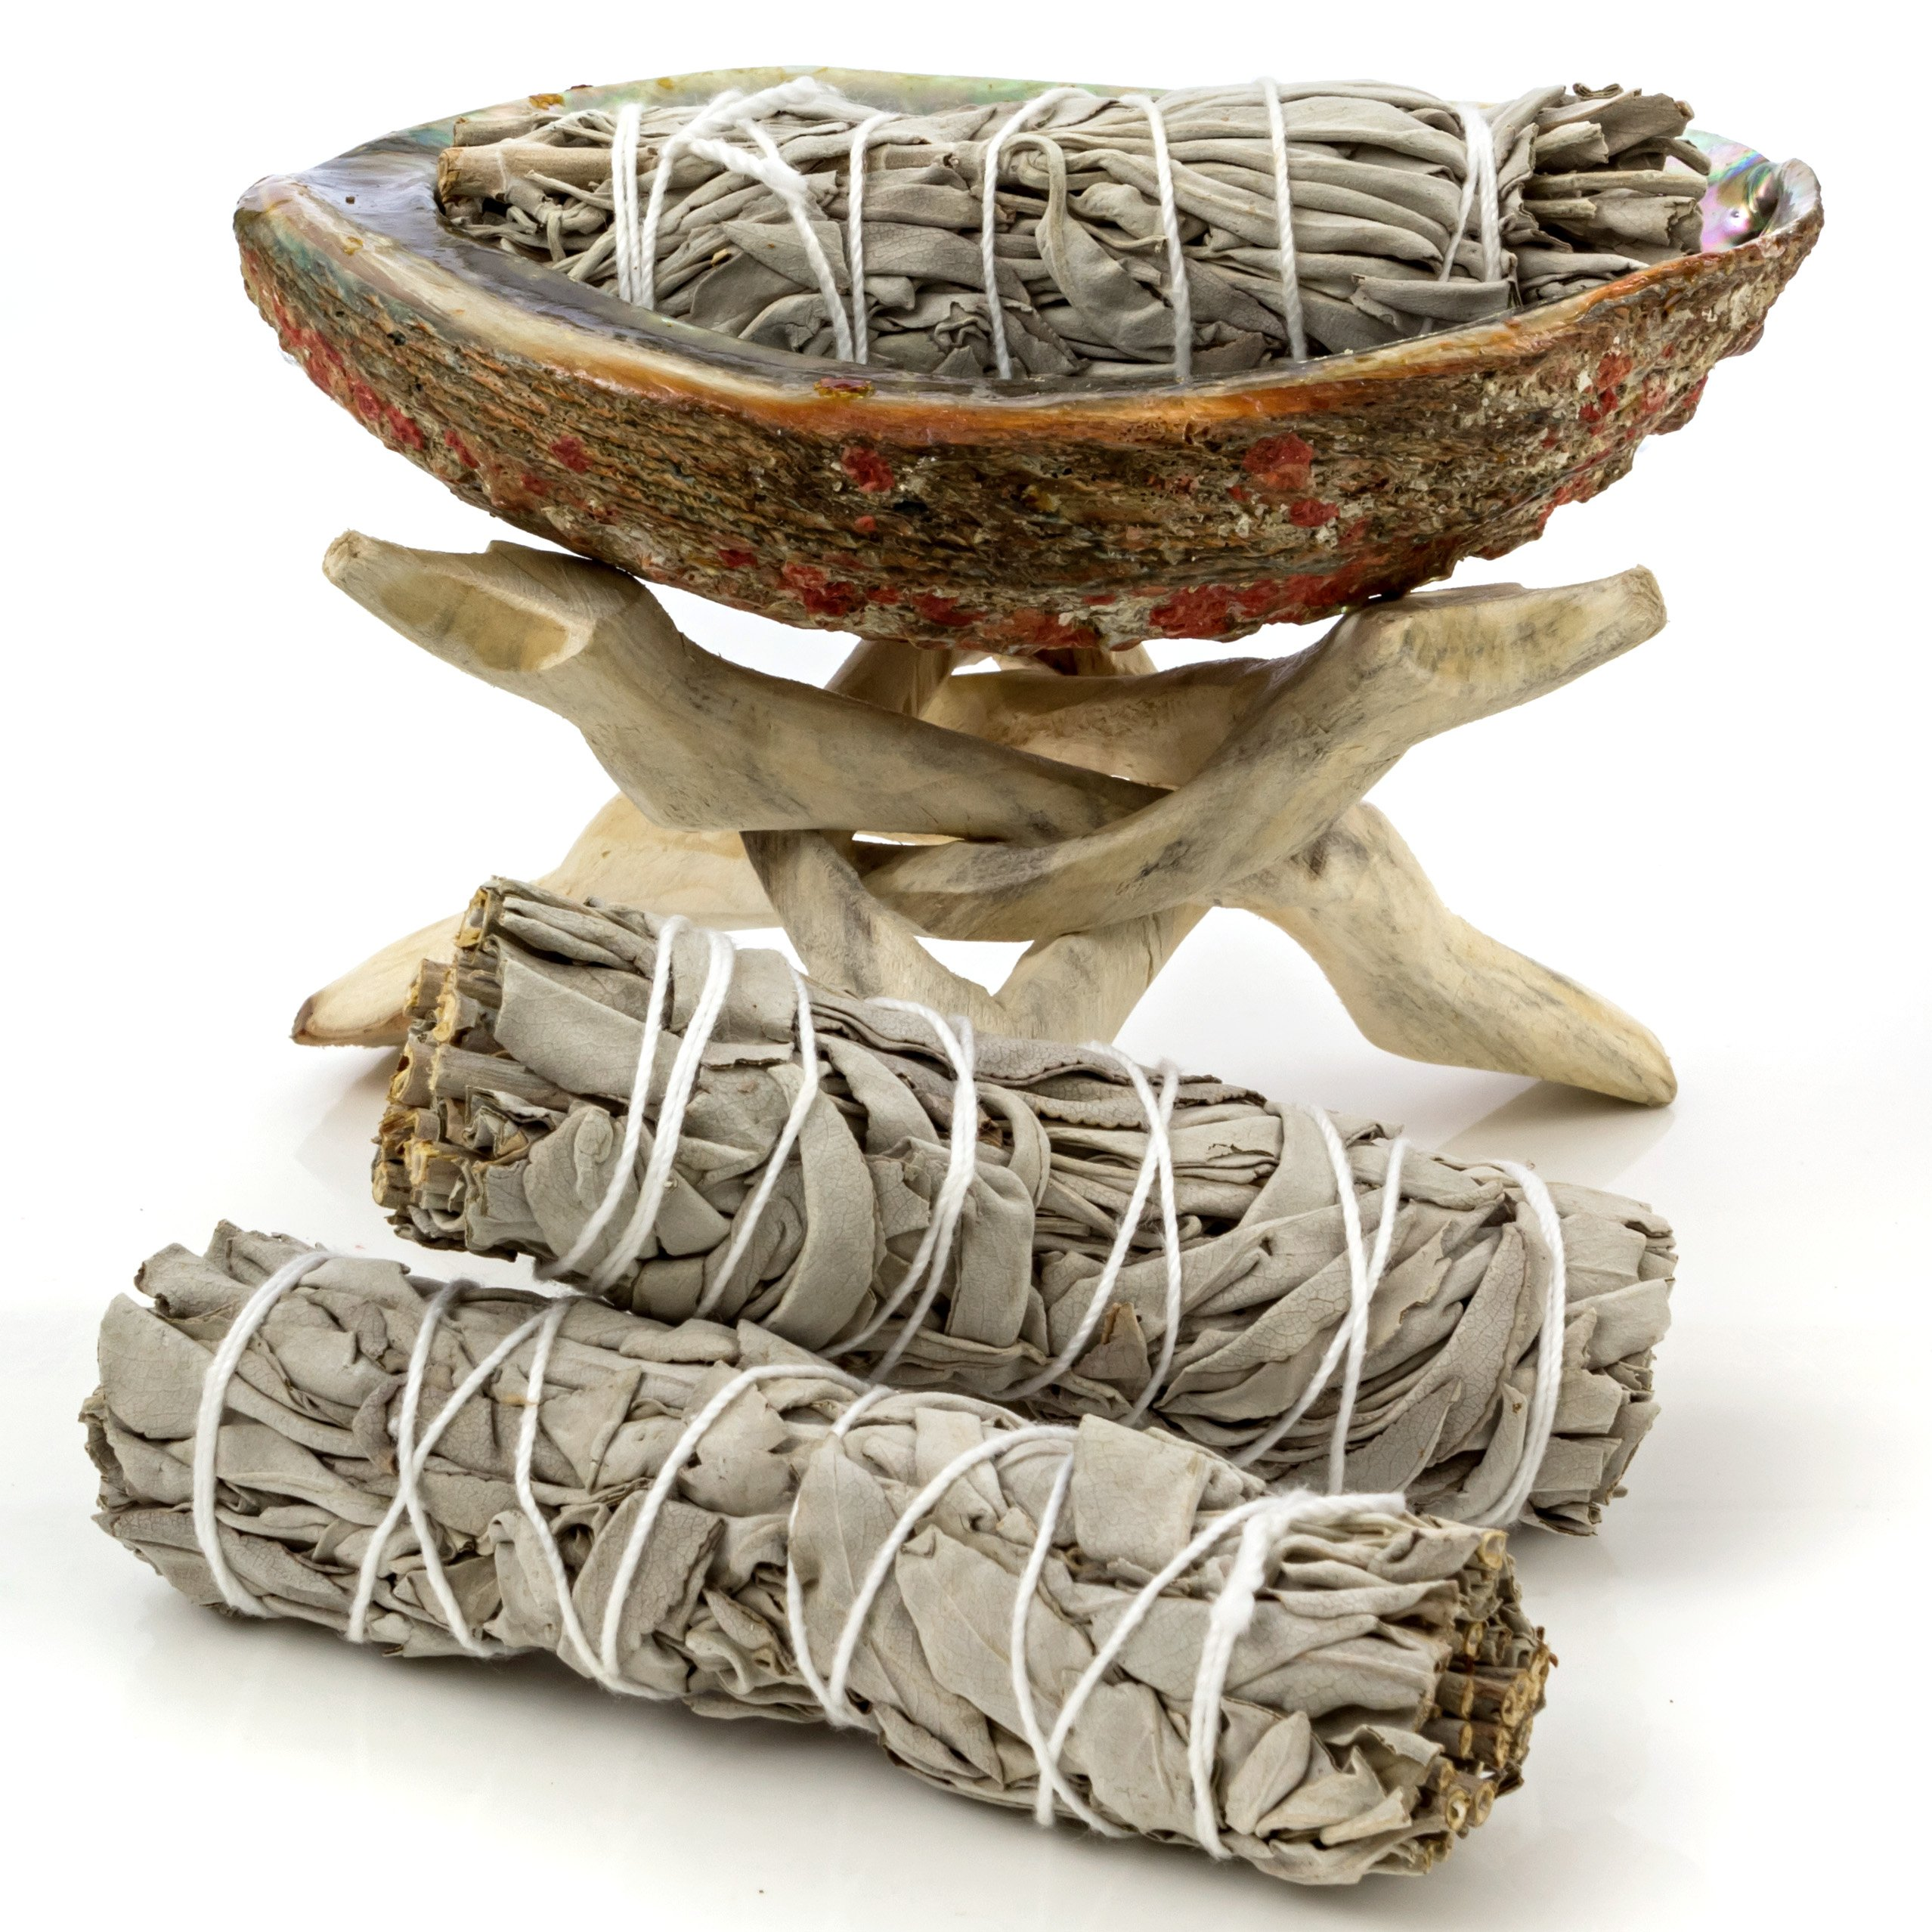 5 Inches (or More) Premium Abalone Shell with Natural Wooden Tripod Stand and 3 California White Sage Smudge Sticks for Incense Burning, Home Fragrance, Energy Clearing, Yoga, Meditation by Alternative Imagination